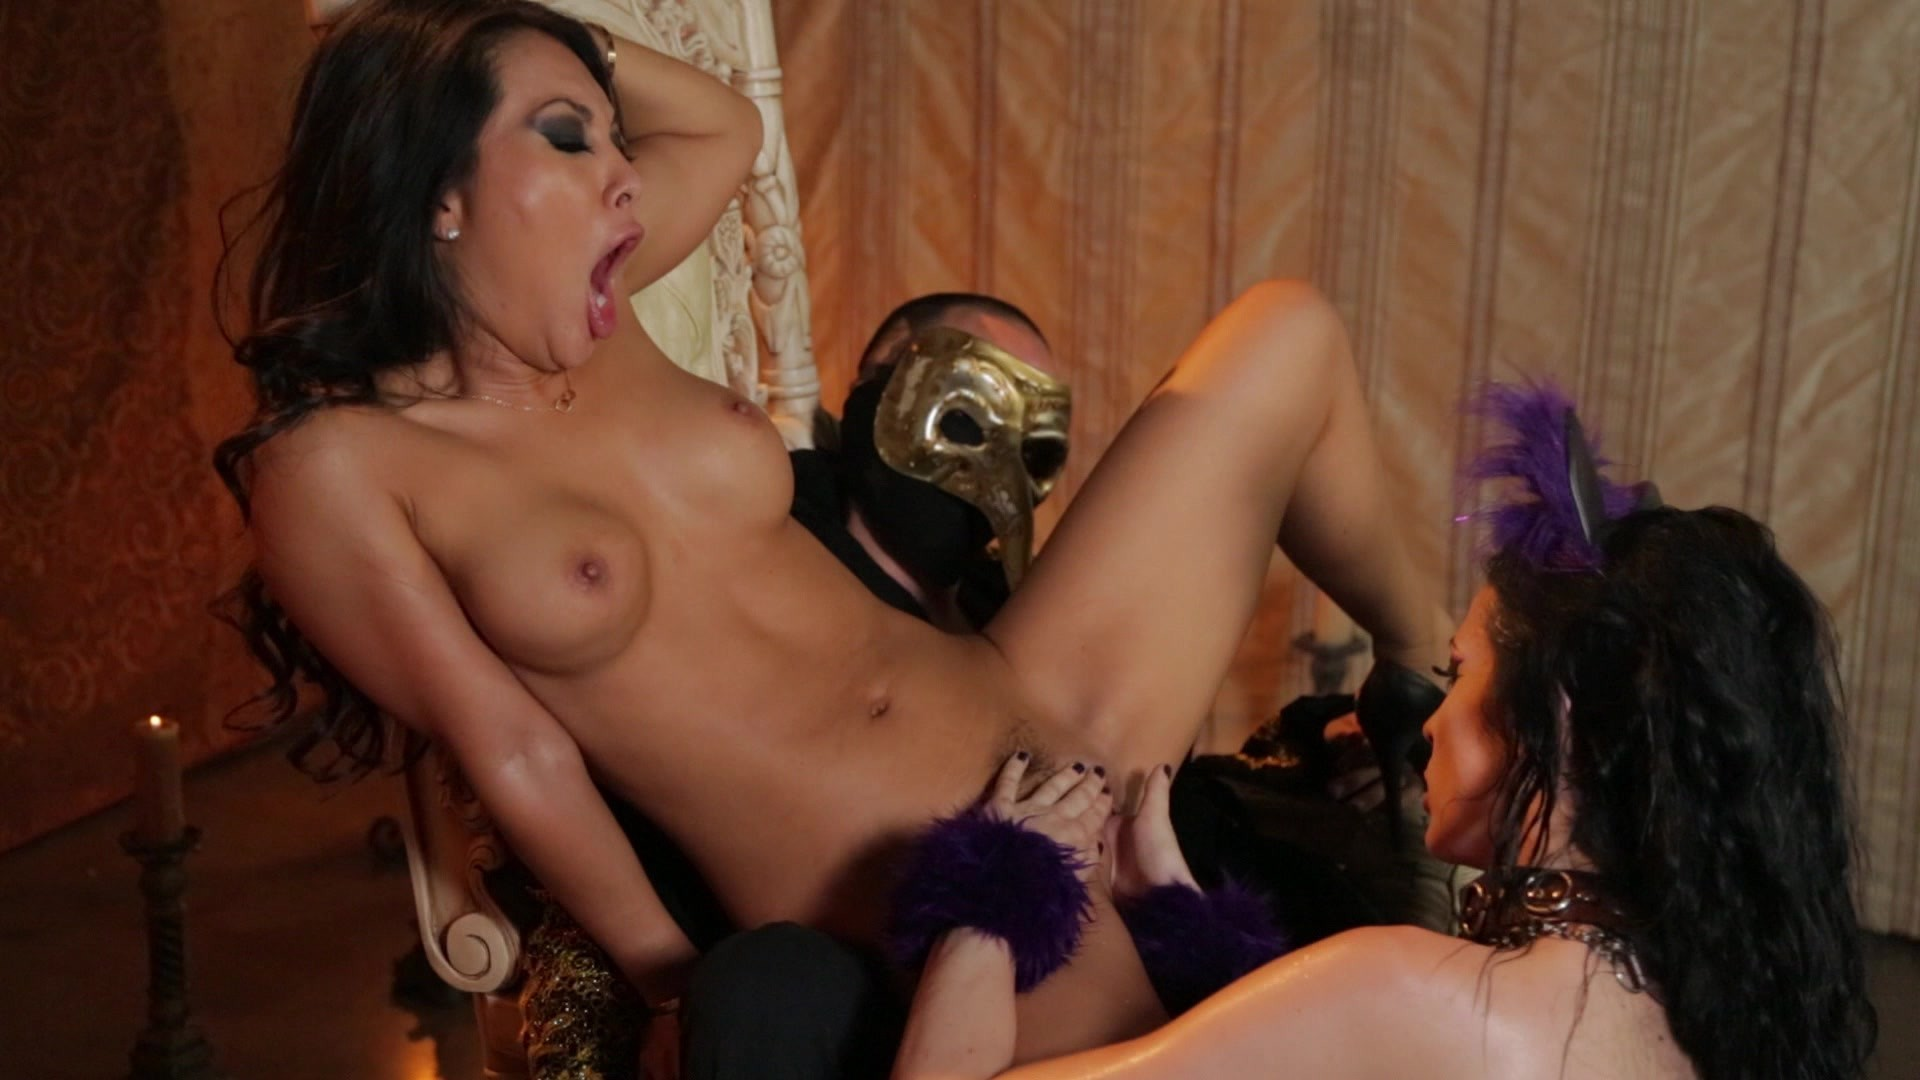 Scene with Asa Akira and Aiden Ashley - image 20 out of 20